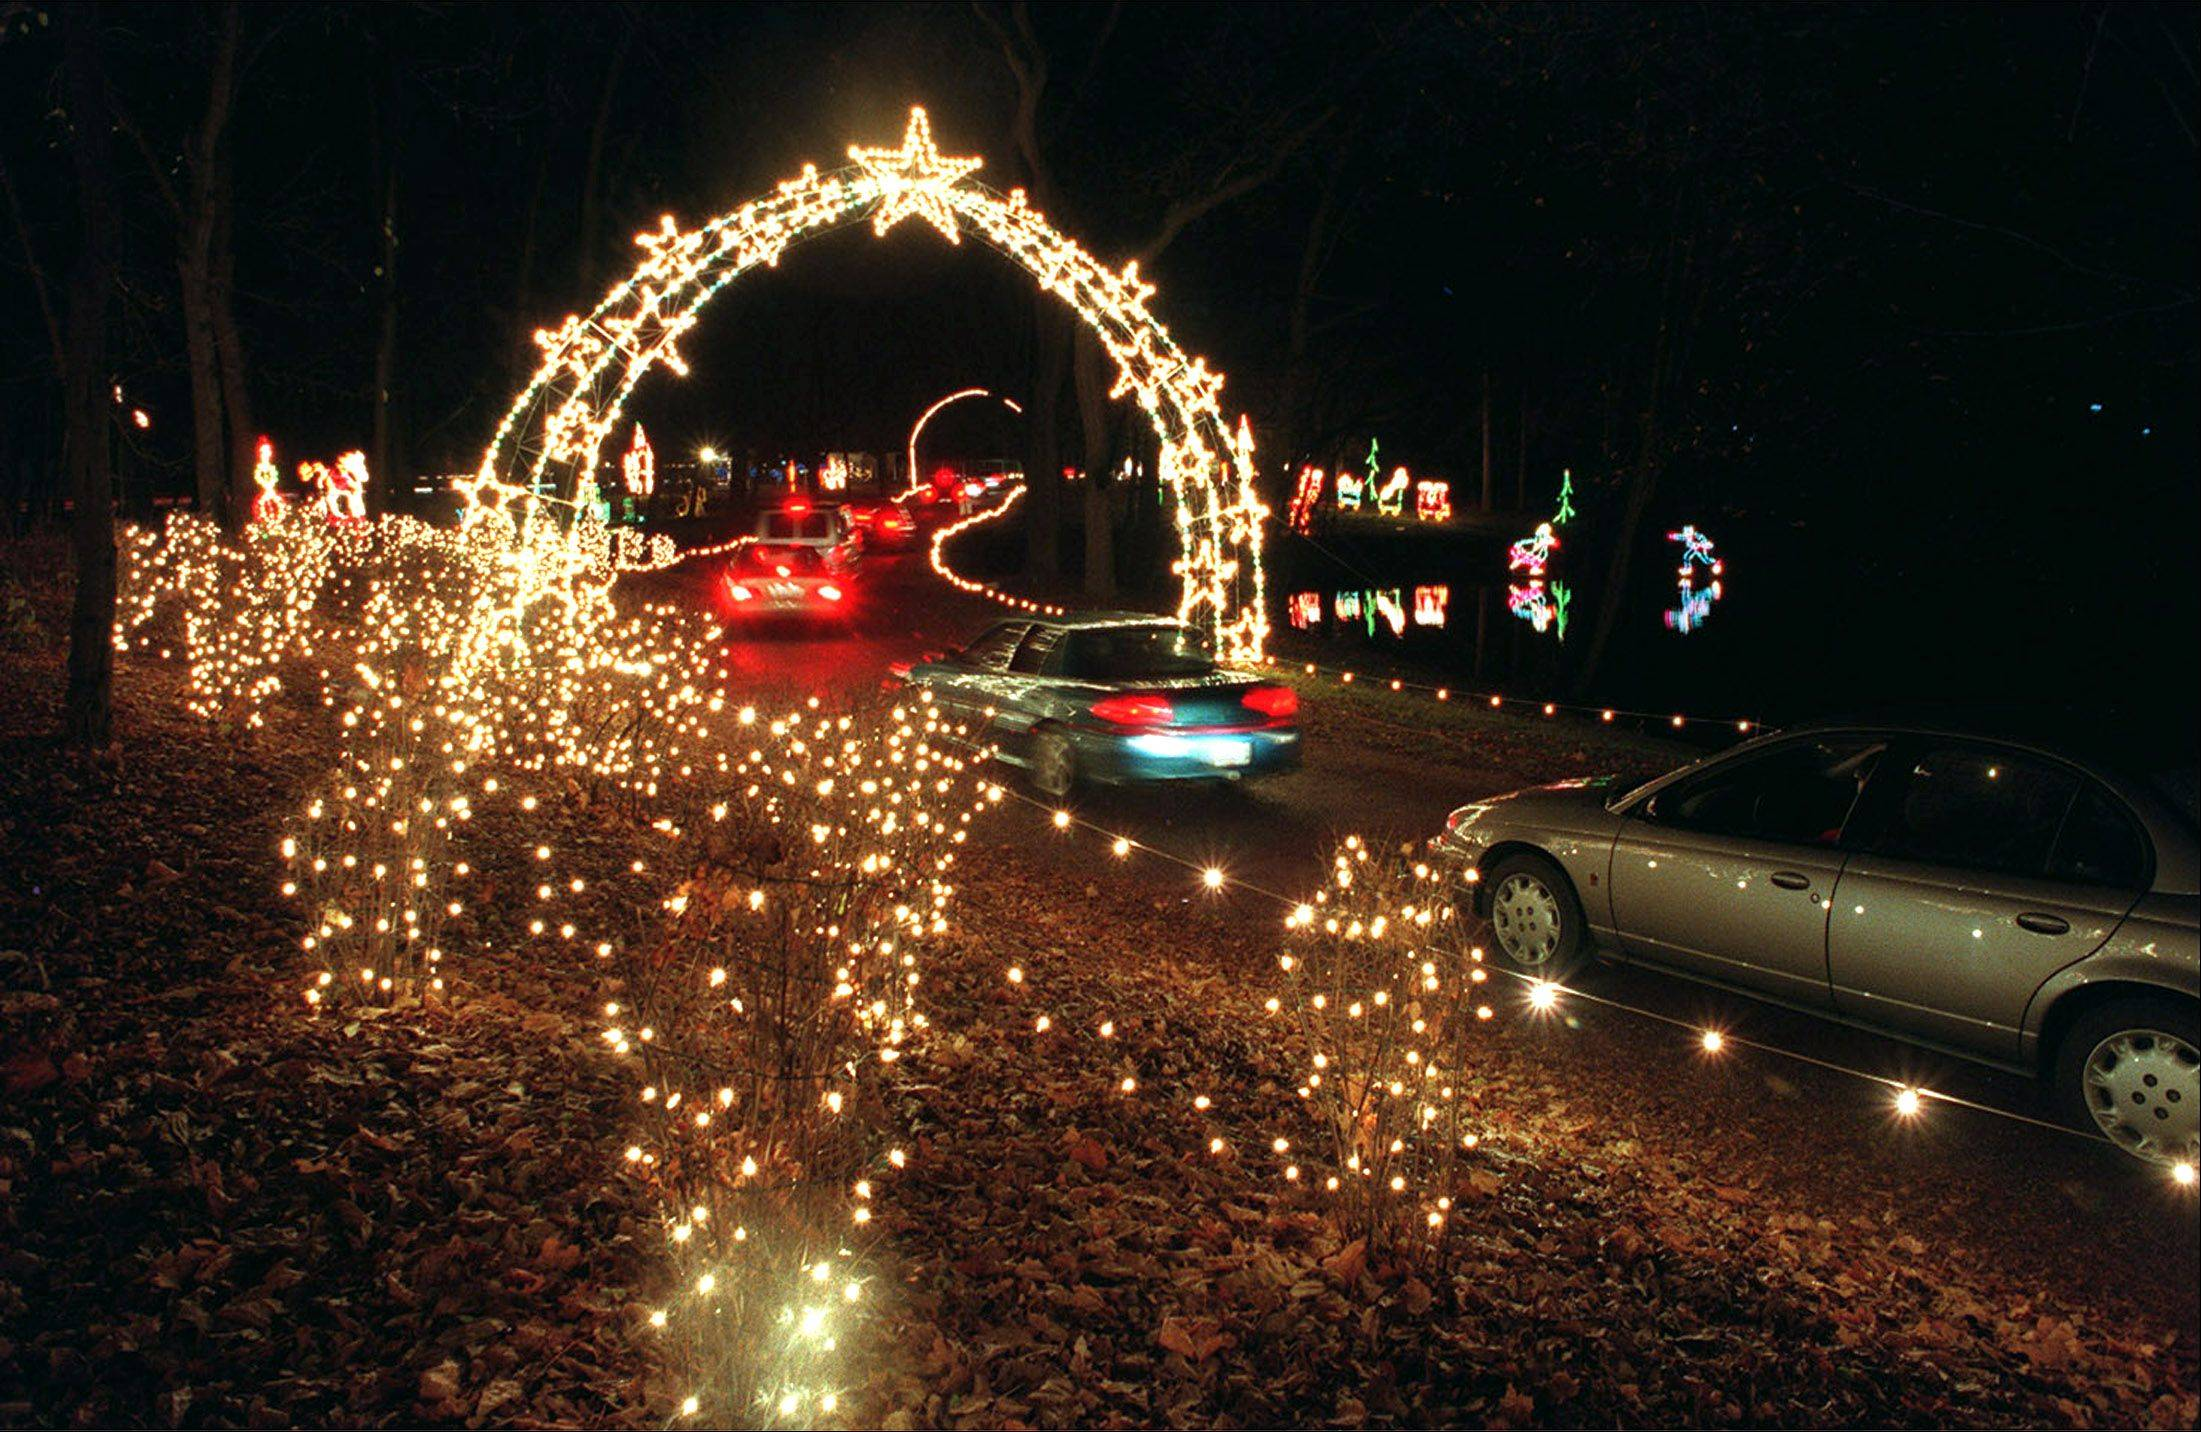 Drive through 97 acres of holiday lights and scenery at the annual Winter Wonderland Holiday Light Show at the Cuneo Museum and Gardens in Vernon Hills.